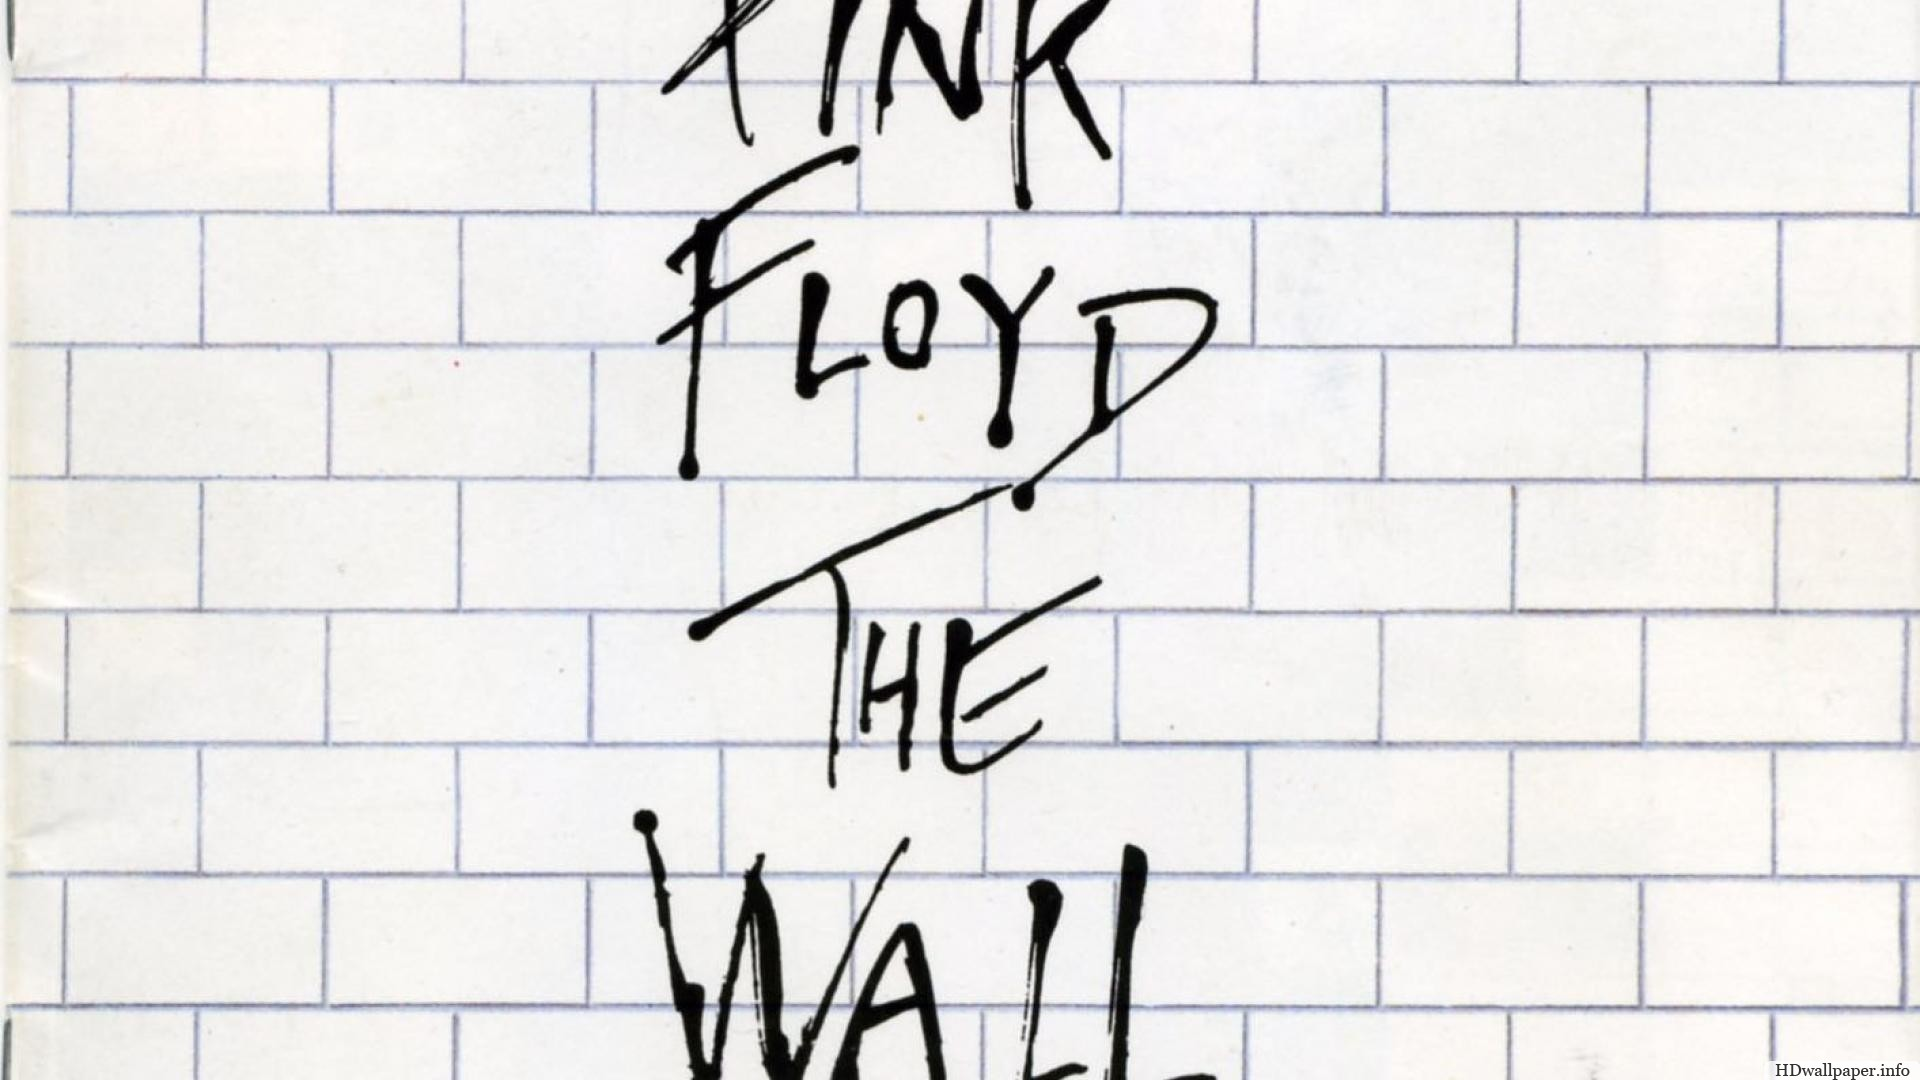 Explore Wall Wallpaper, Pink Floyd, and more!